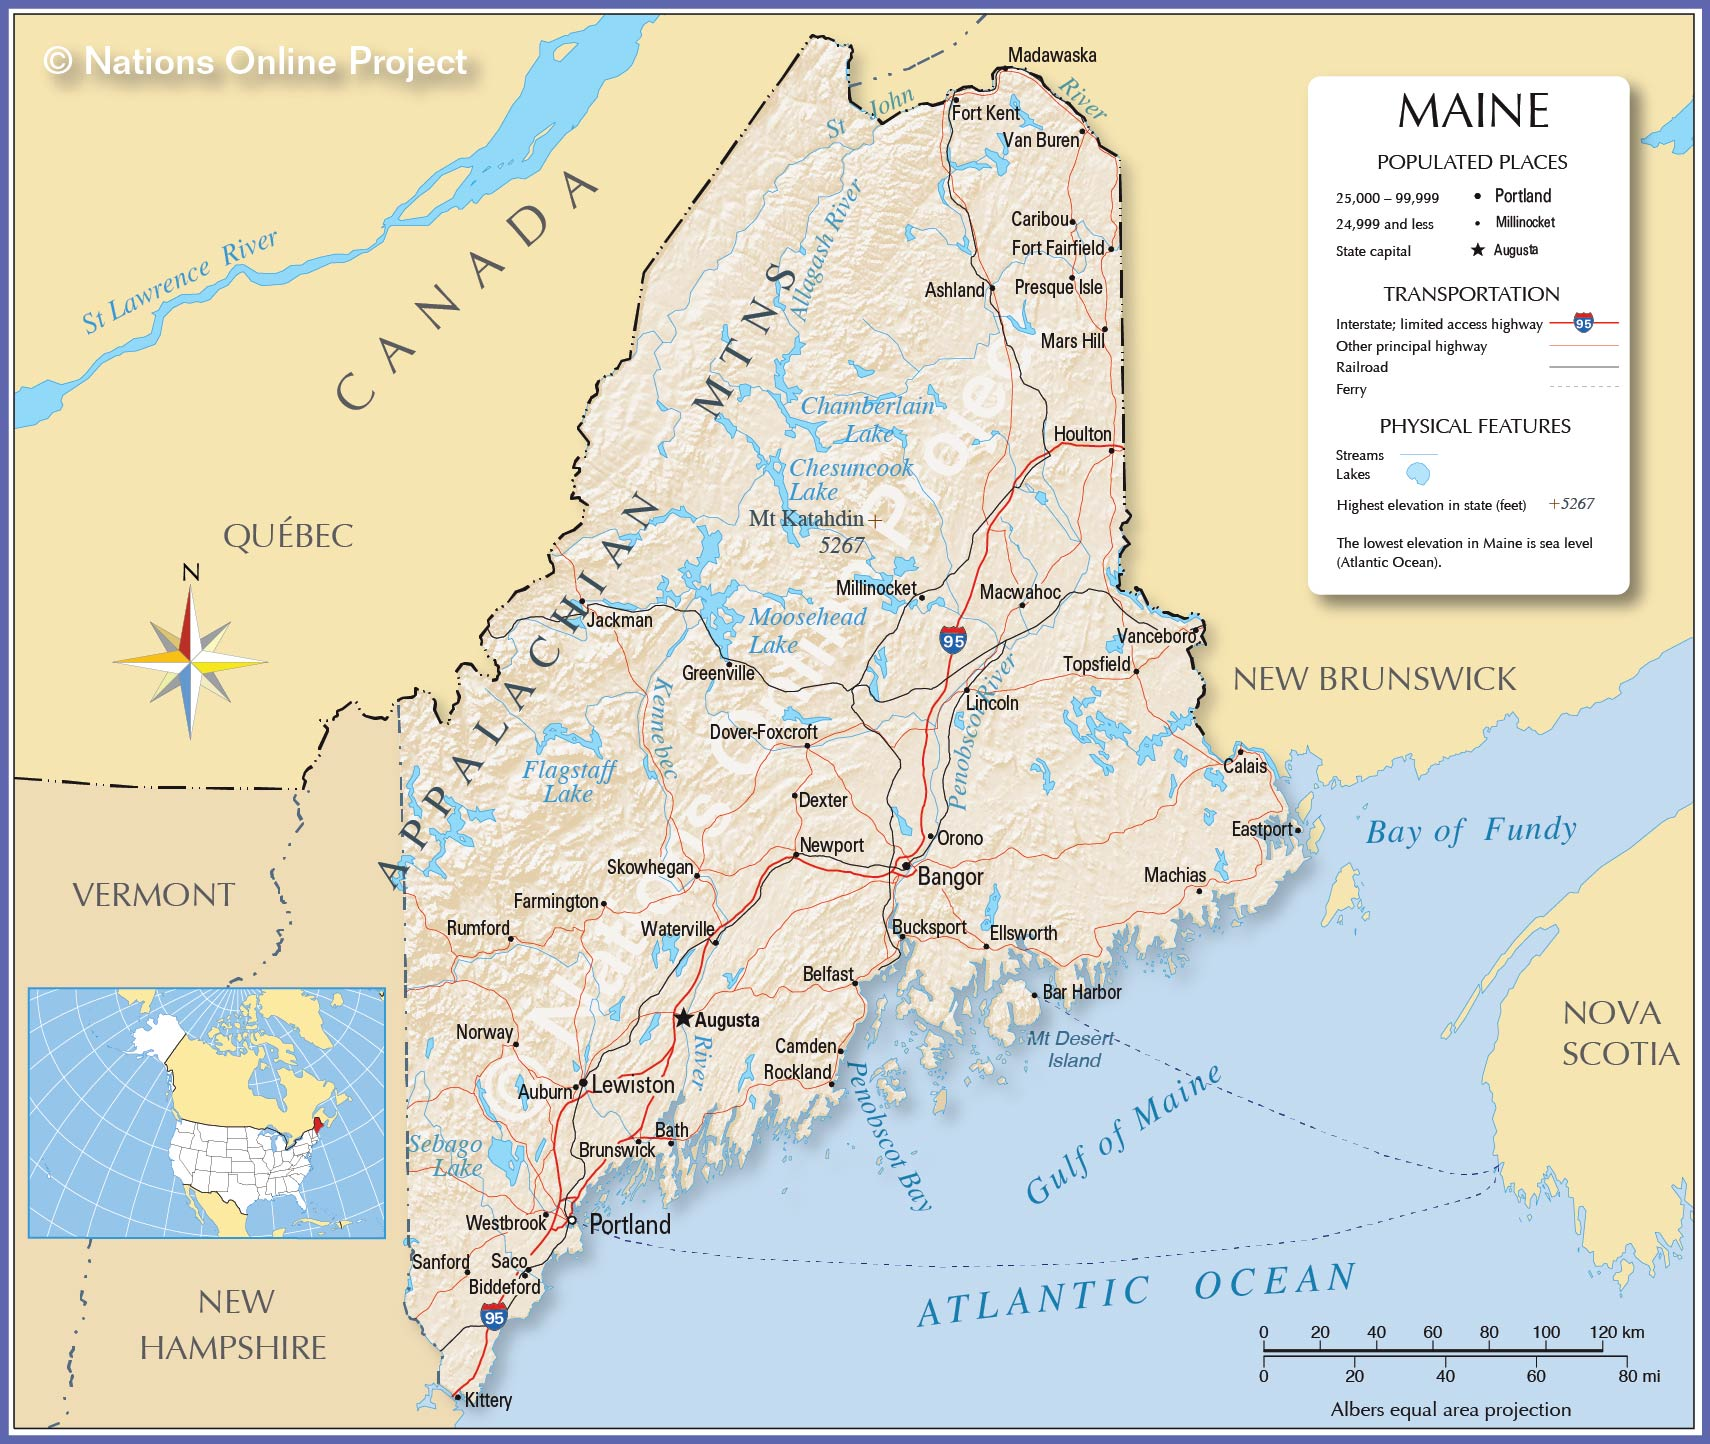 Reference Map Of Maine USA Nations Online Project - Maine state usa map